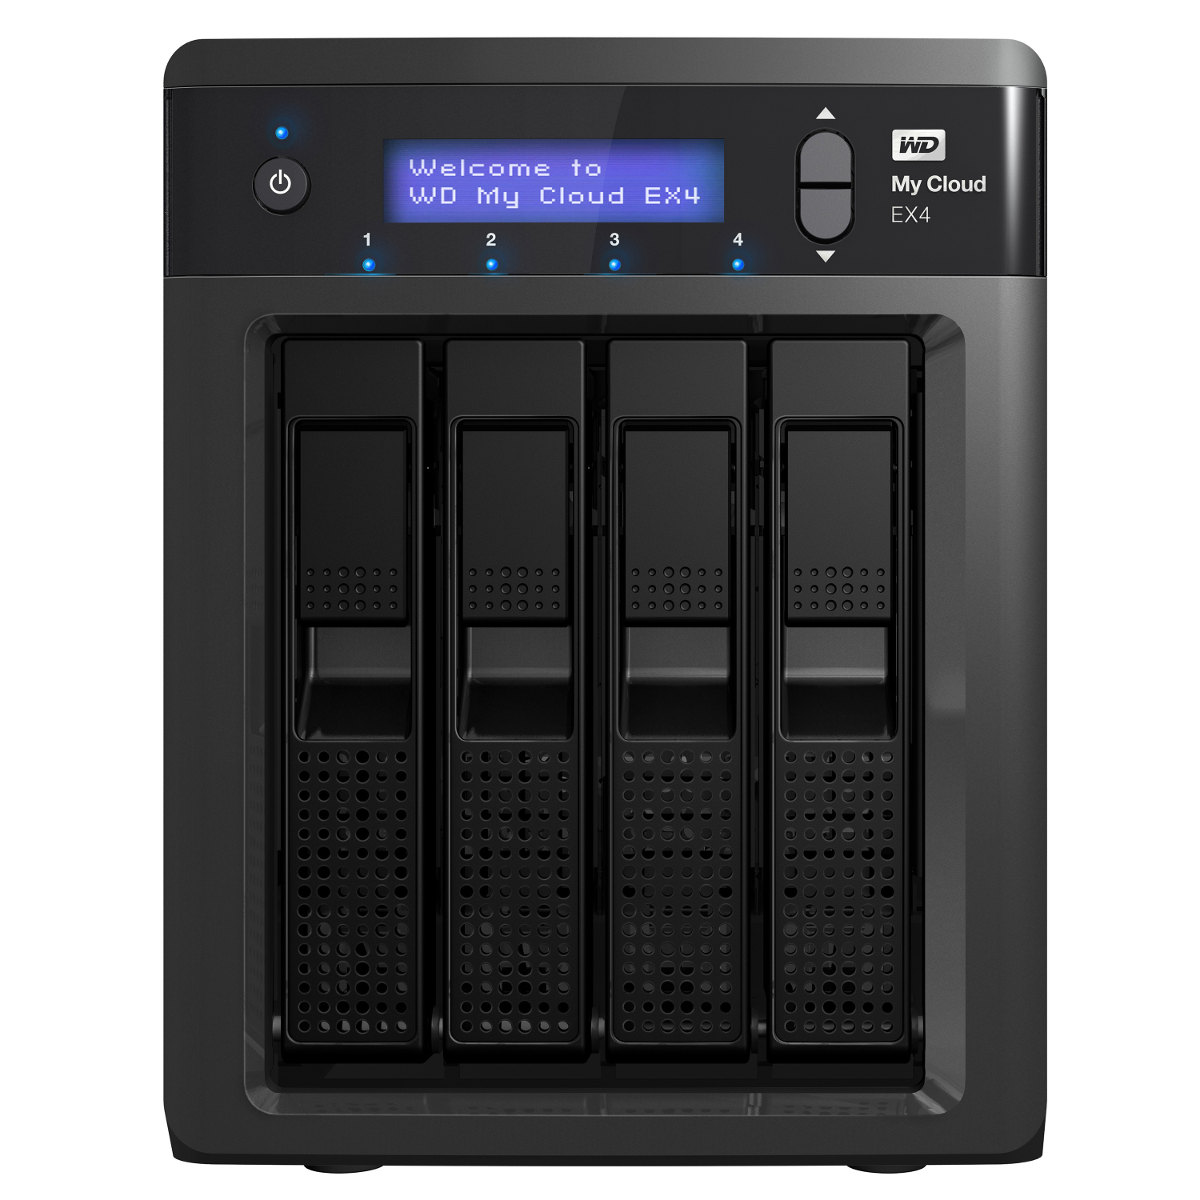 Serveur NAS WD My Cloud EX4 8 To (4 x 2 To) Serveur de stockage multimédia 4 baies